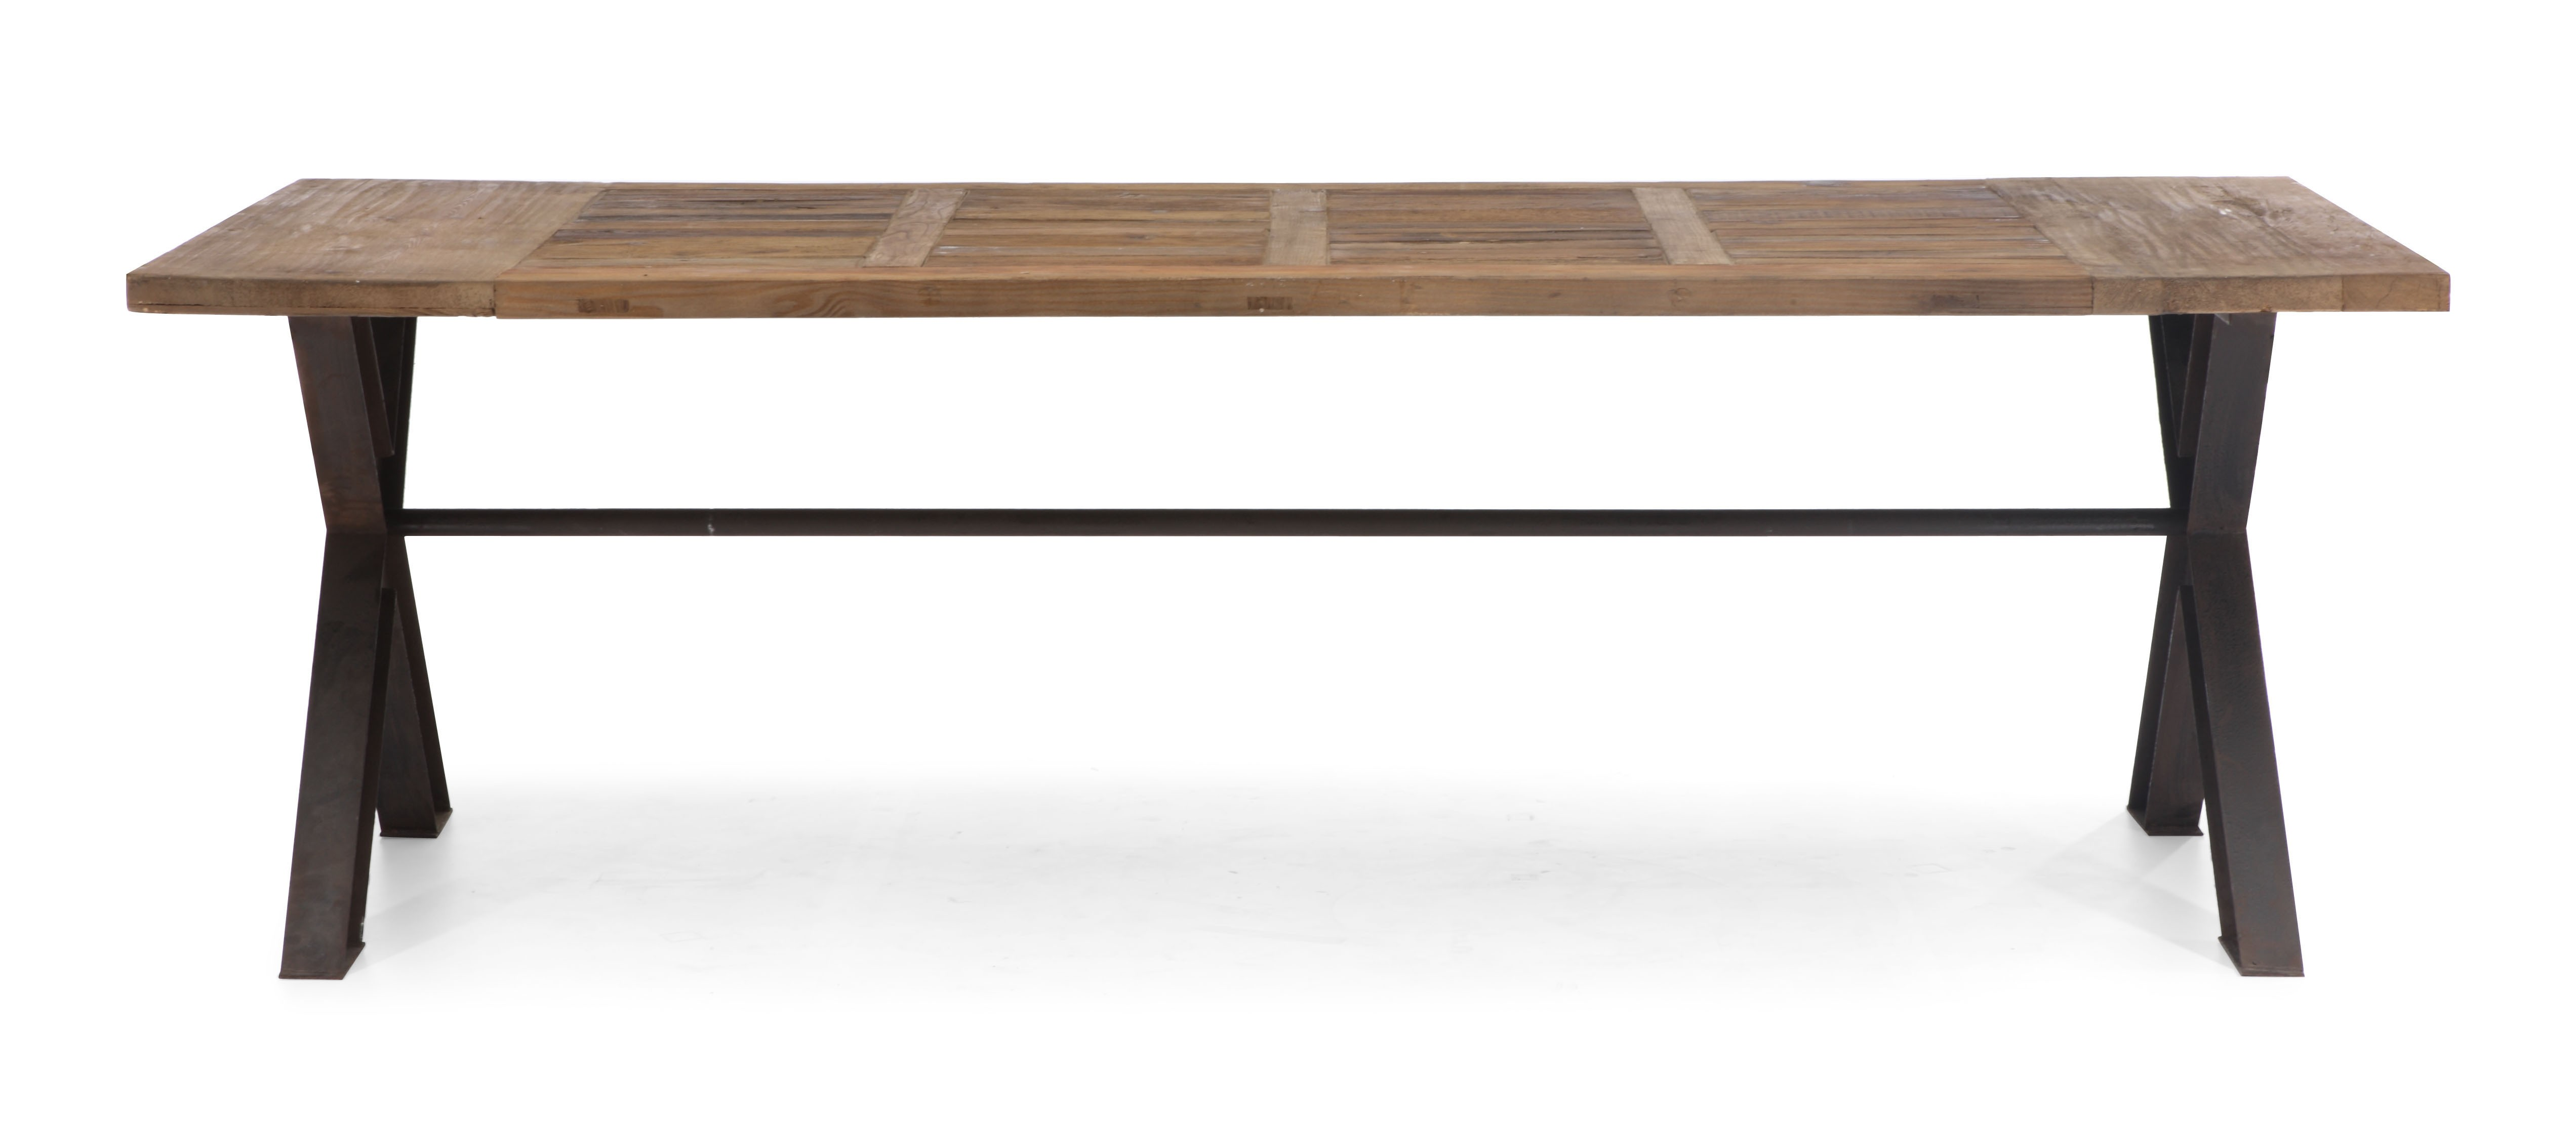 Contemporary Trestle Legs Dining Table With Intricate Top San Antonio Texas Z